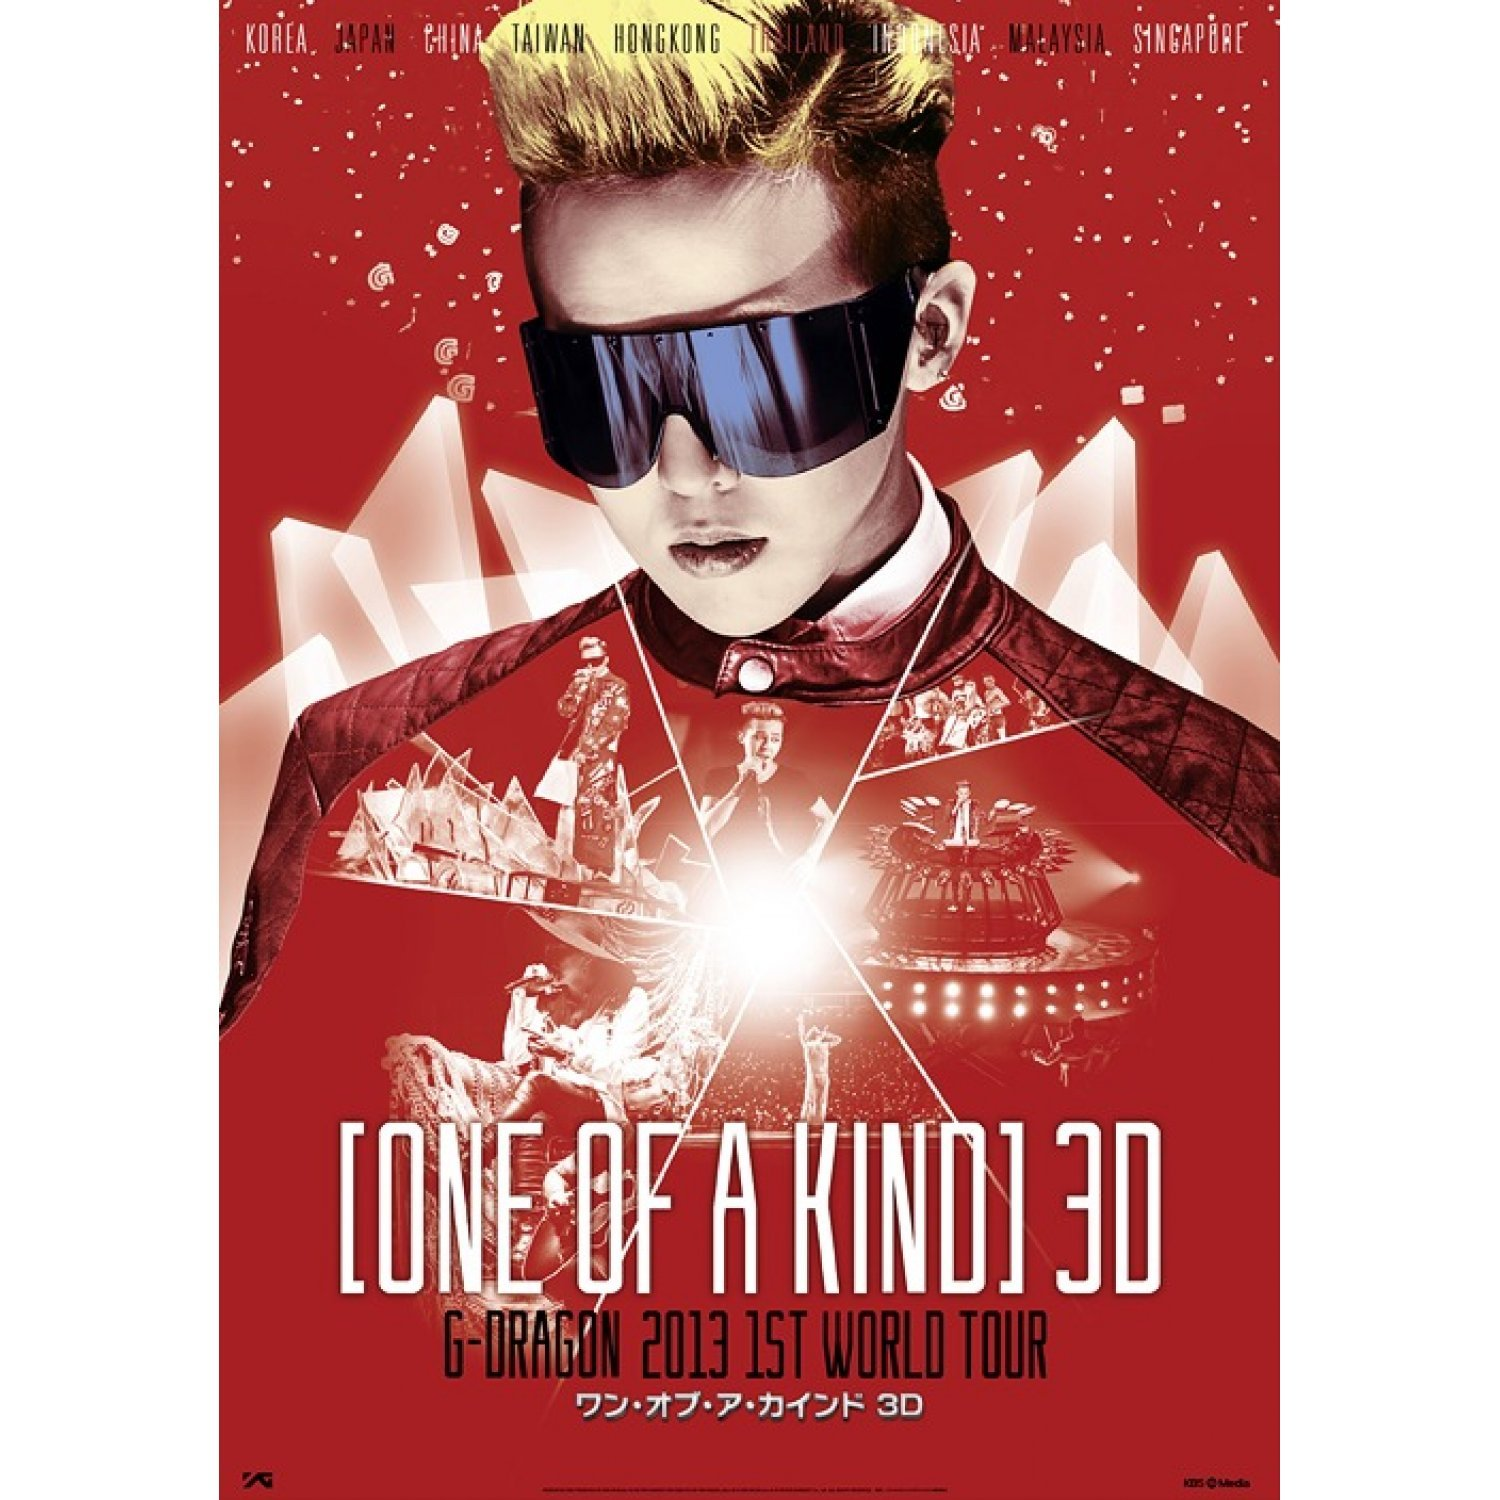 One Of A Kind 3D - G-Dragon 2013 1st World Tour